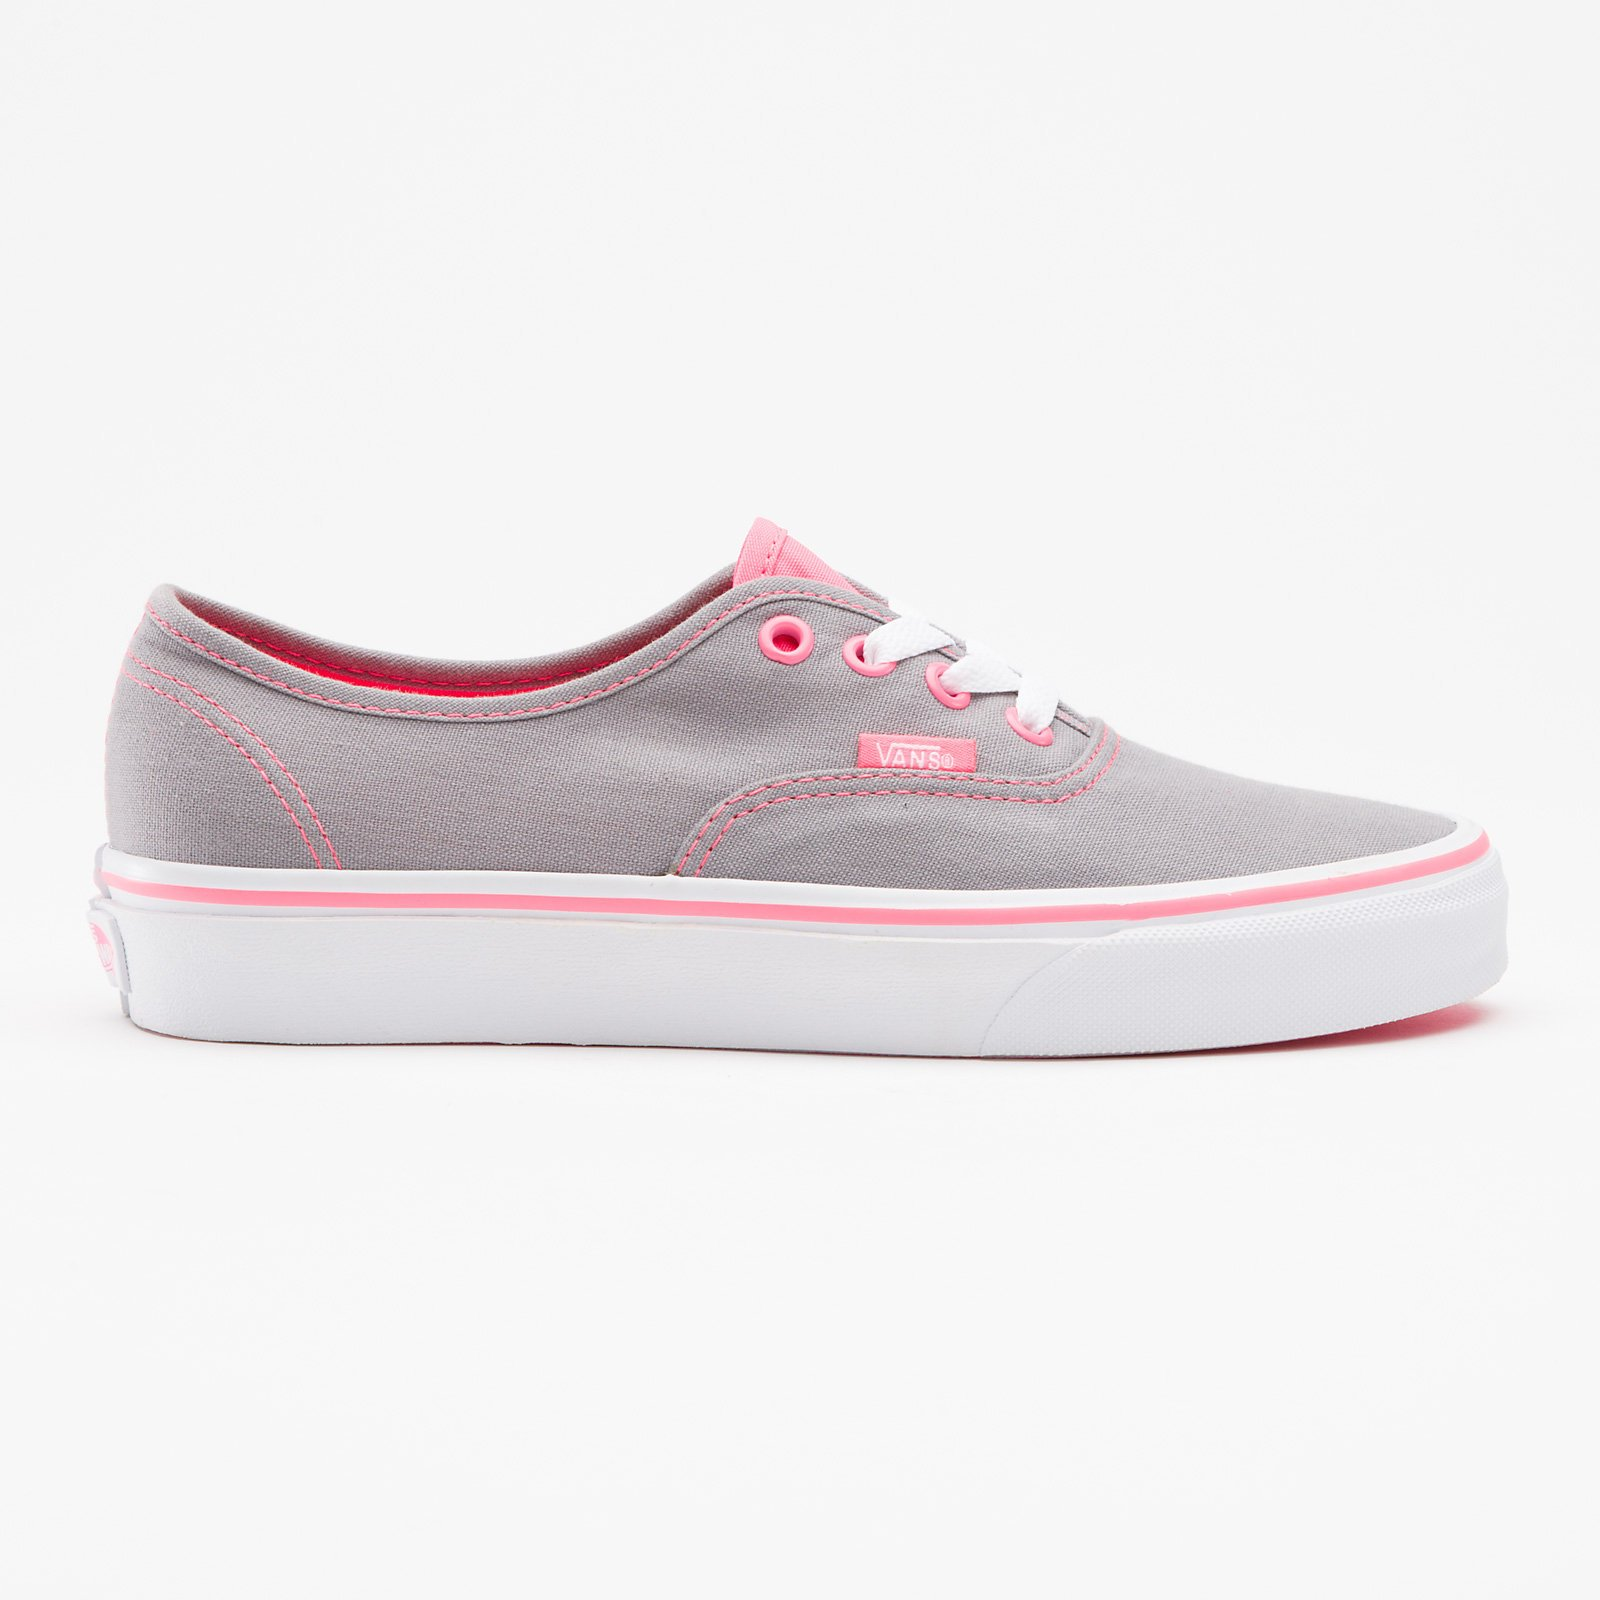 vans pop authentic neon